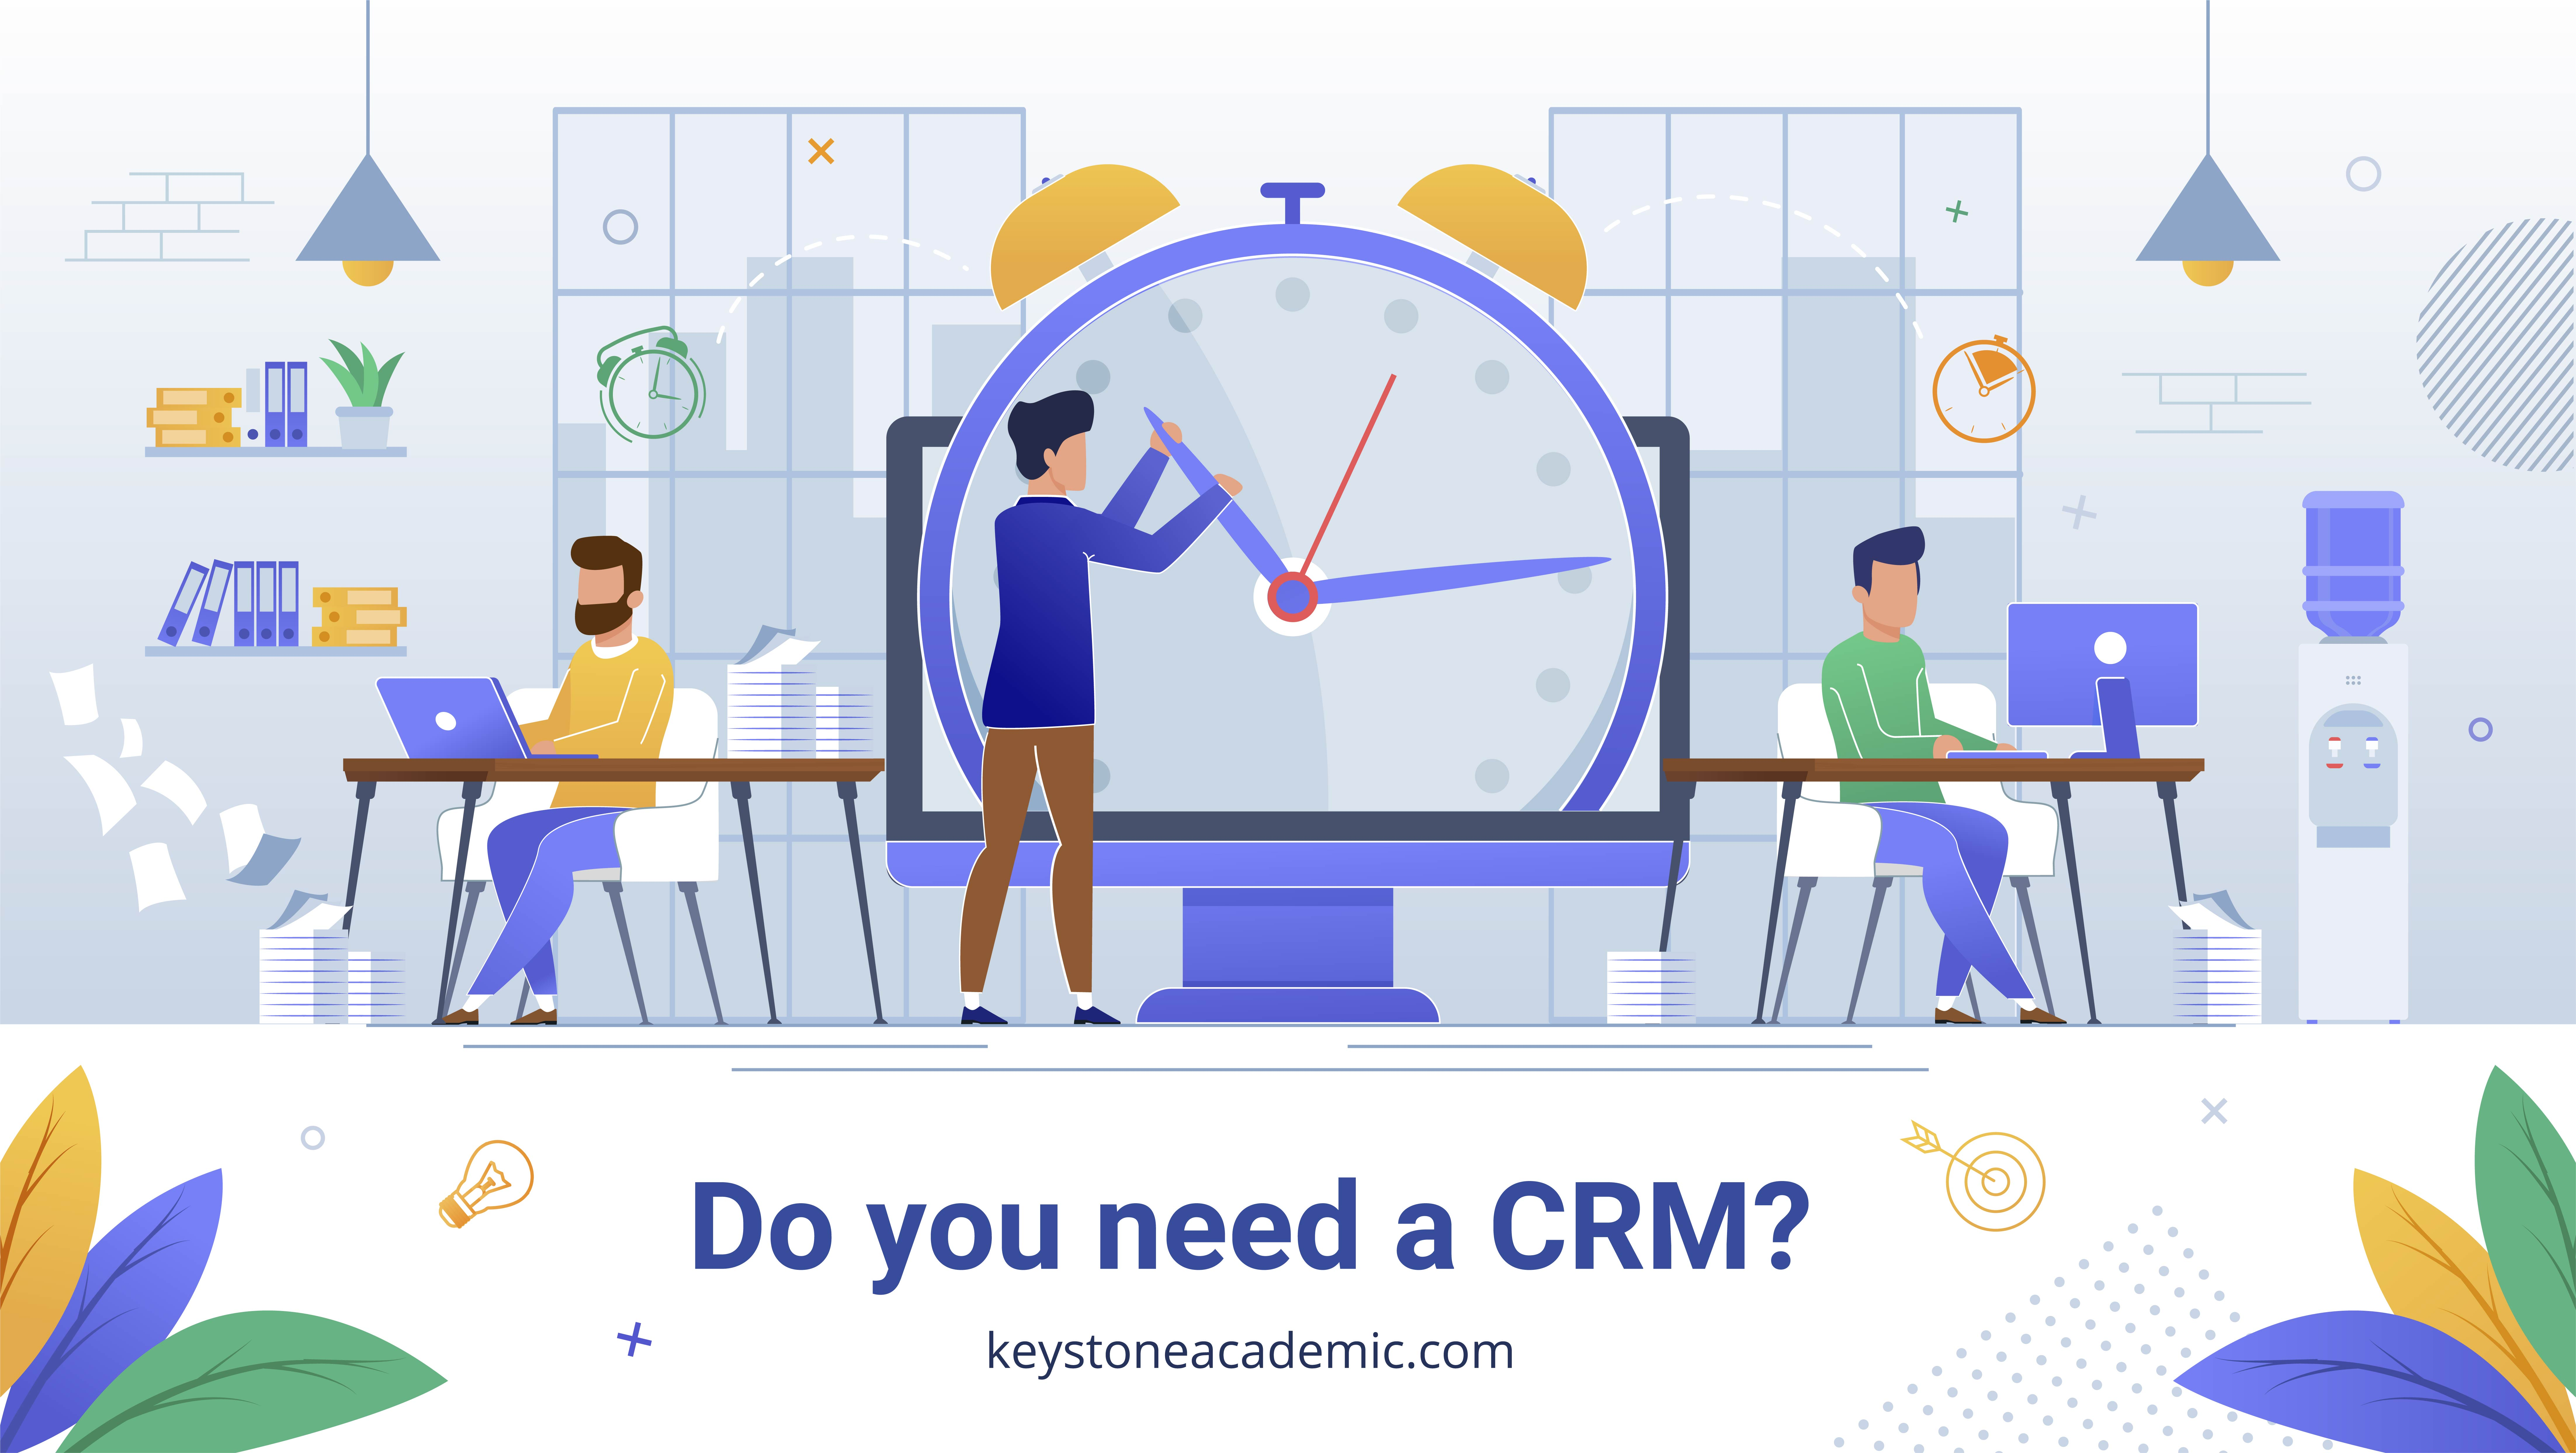 Do you need a crm